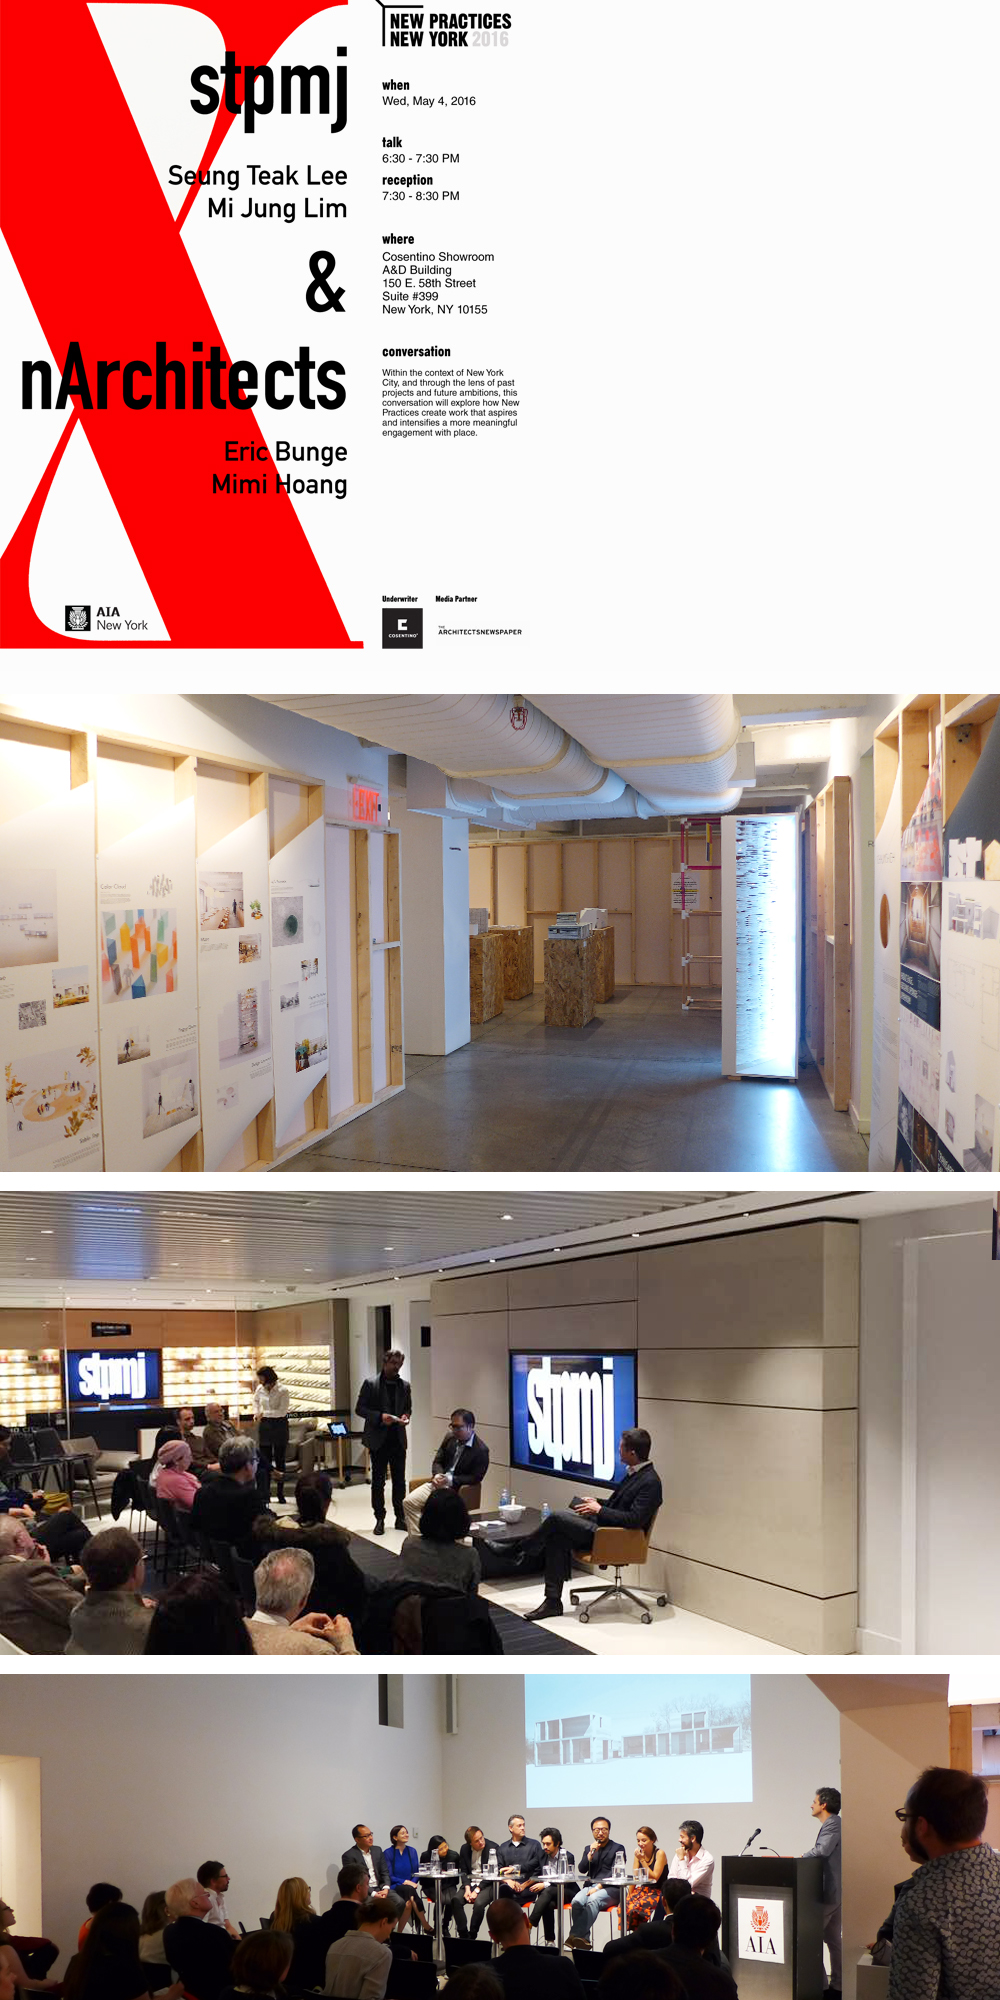 """New Practices New York, a biennial competition since 2006, serves as the preeminent platform in New York City to recognize and promote new and innovative architecture and design firms. The juried portfolio competition is sponsored by the New Practices Committee of the AIA New York Chapter and honors firms that have utilized unique and innovative strategies, both for the projects they undertake and for the practices they have established. 2016 marks the 10th anniversary of the New Practices Committee and the New Practices New York competition.""       See articles in the links below:   AIA New York    Architect's Newspaper    Archdaily    Bustler    Editor at Large    The Architecture Insight    Archinect"